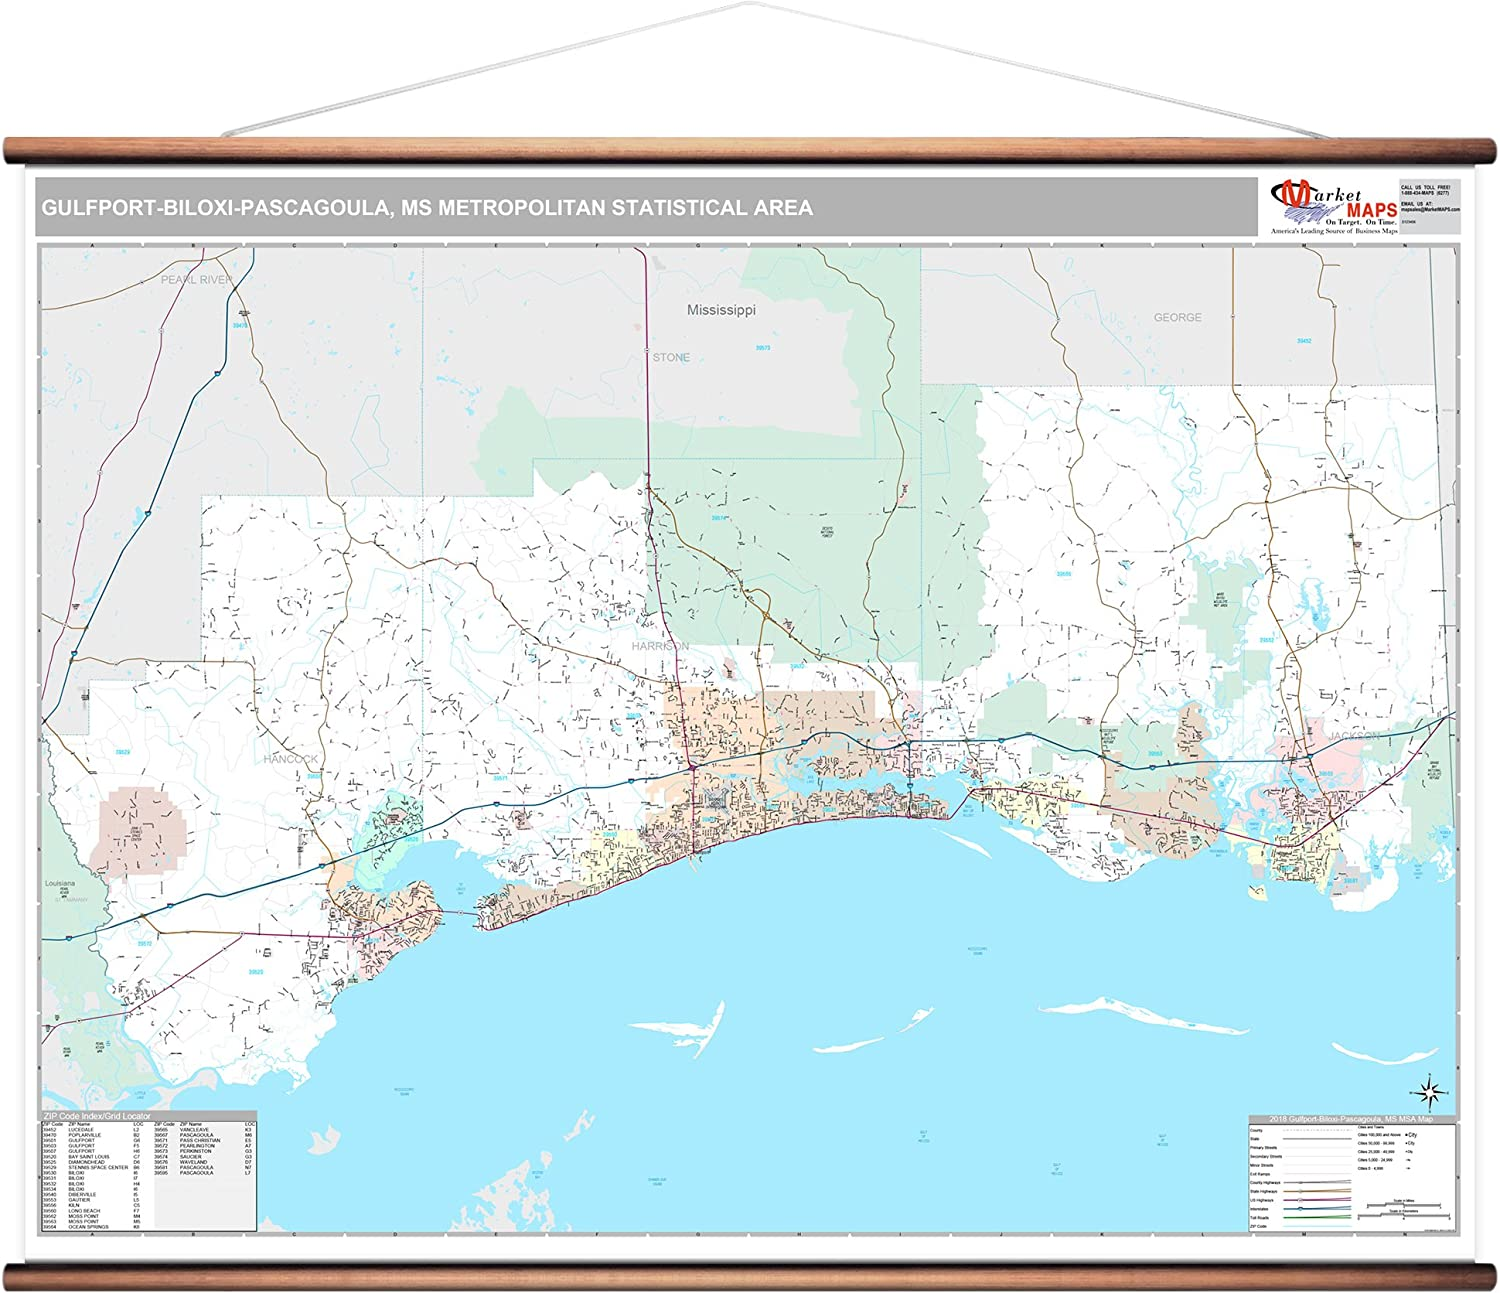 Amazon Com Gulfport Biloxi Pascagoula Ms Metro Area Wall Map